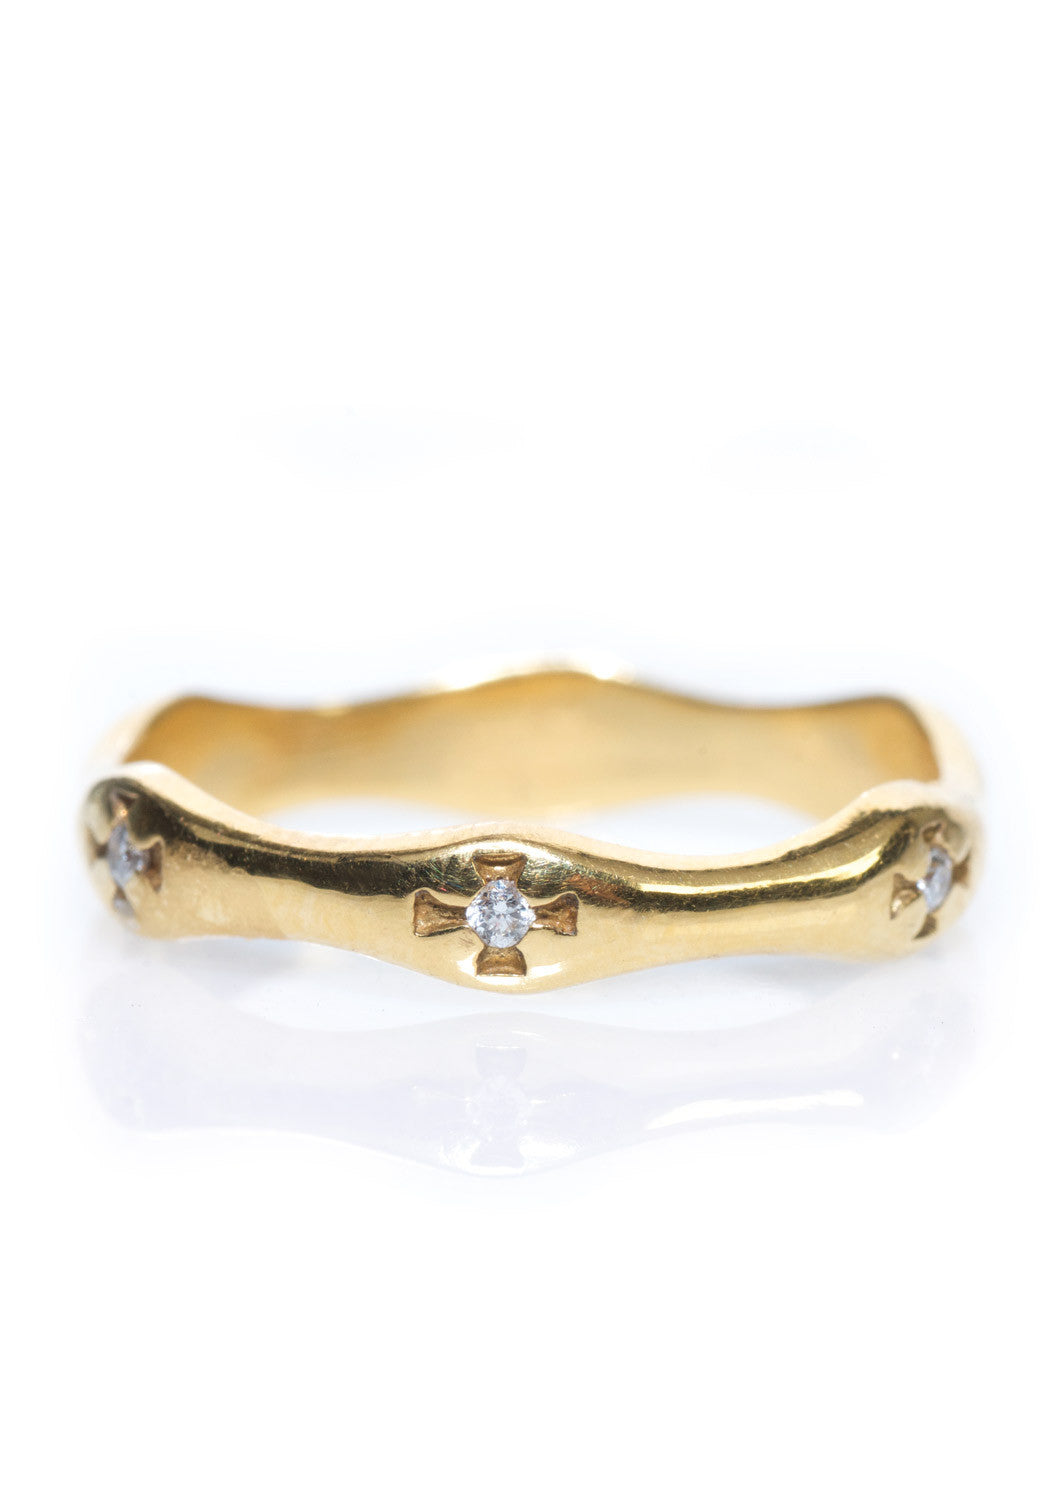 Arman Sarkisyan Polished 22K Yellow Gold & Diamond Band